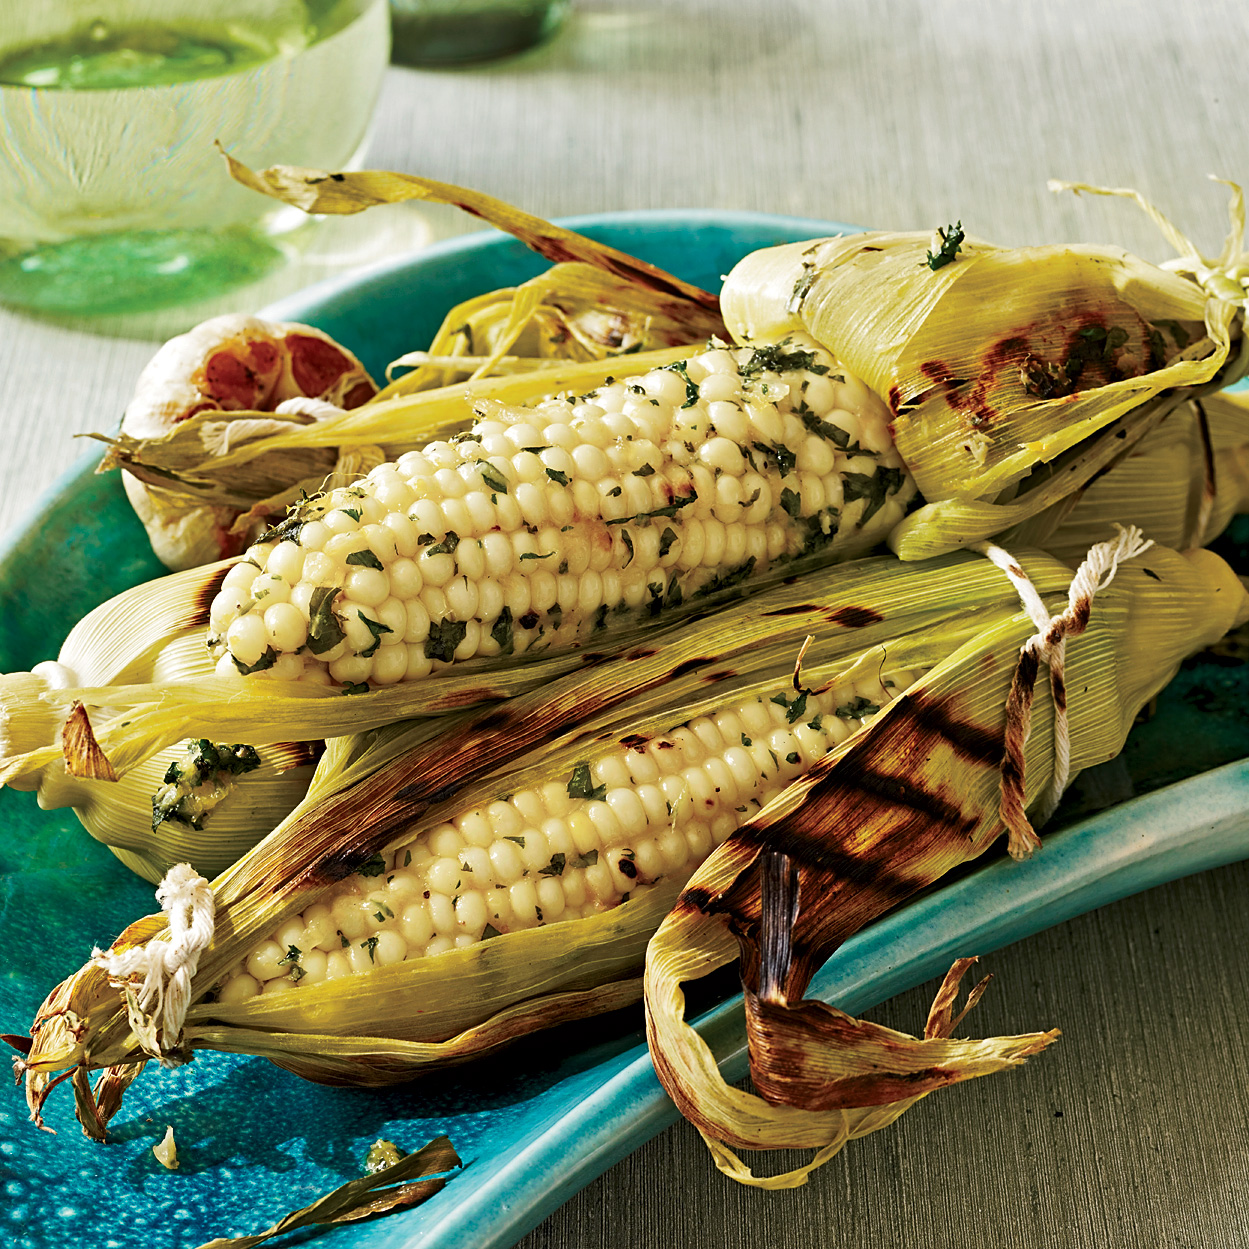 pictures How to Grill Corn on the Cob